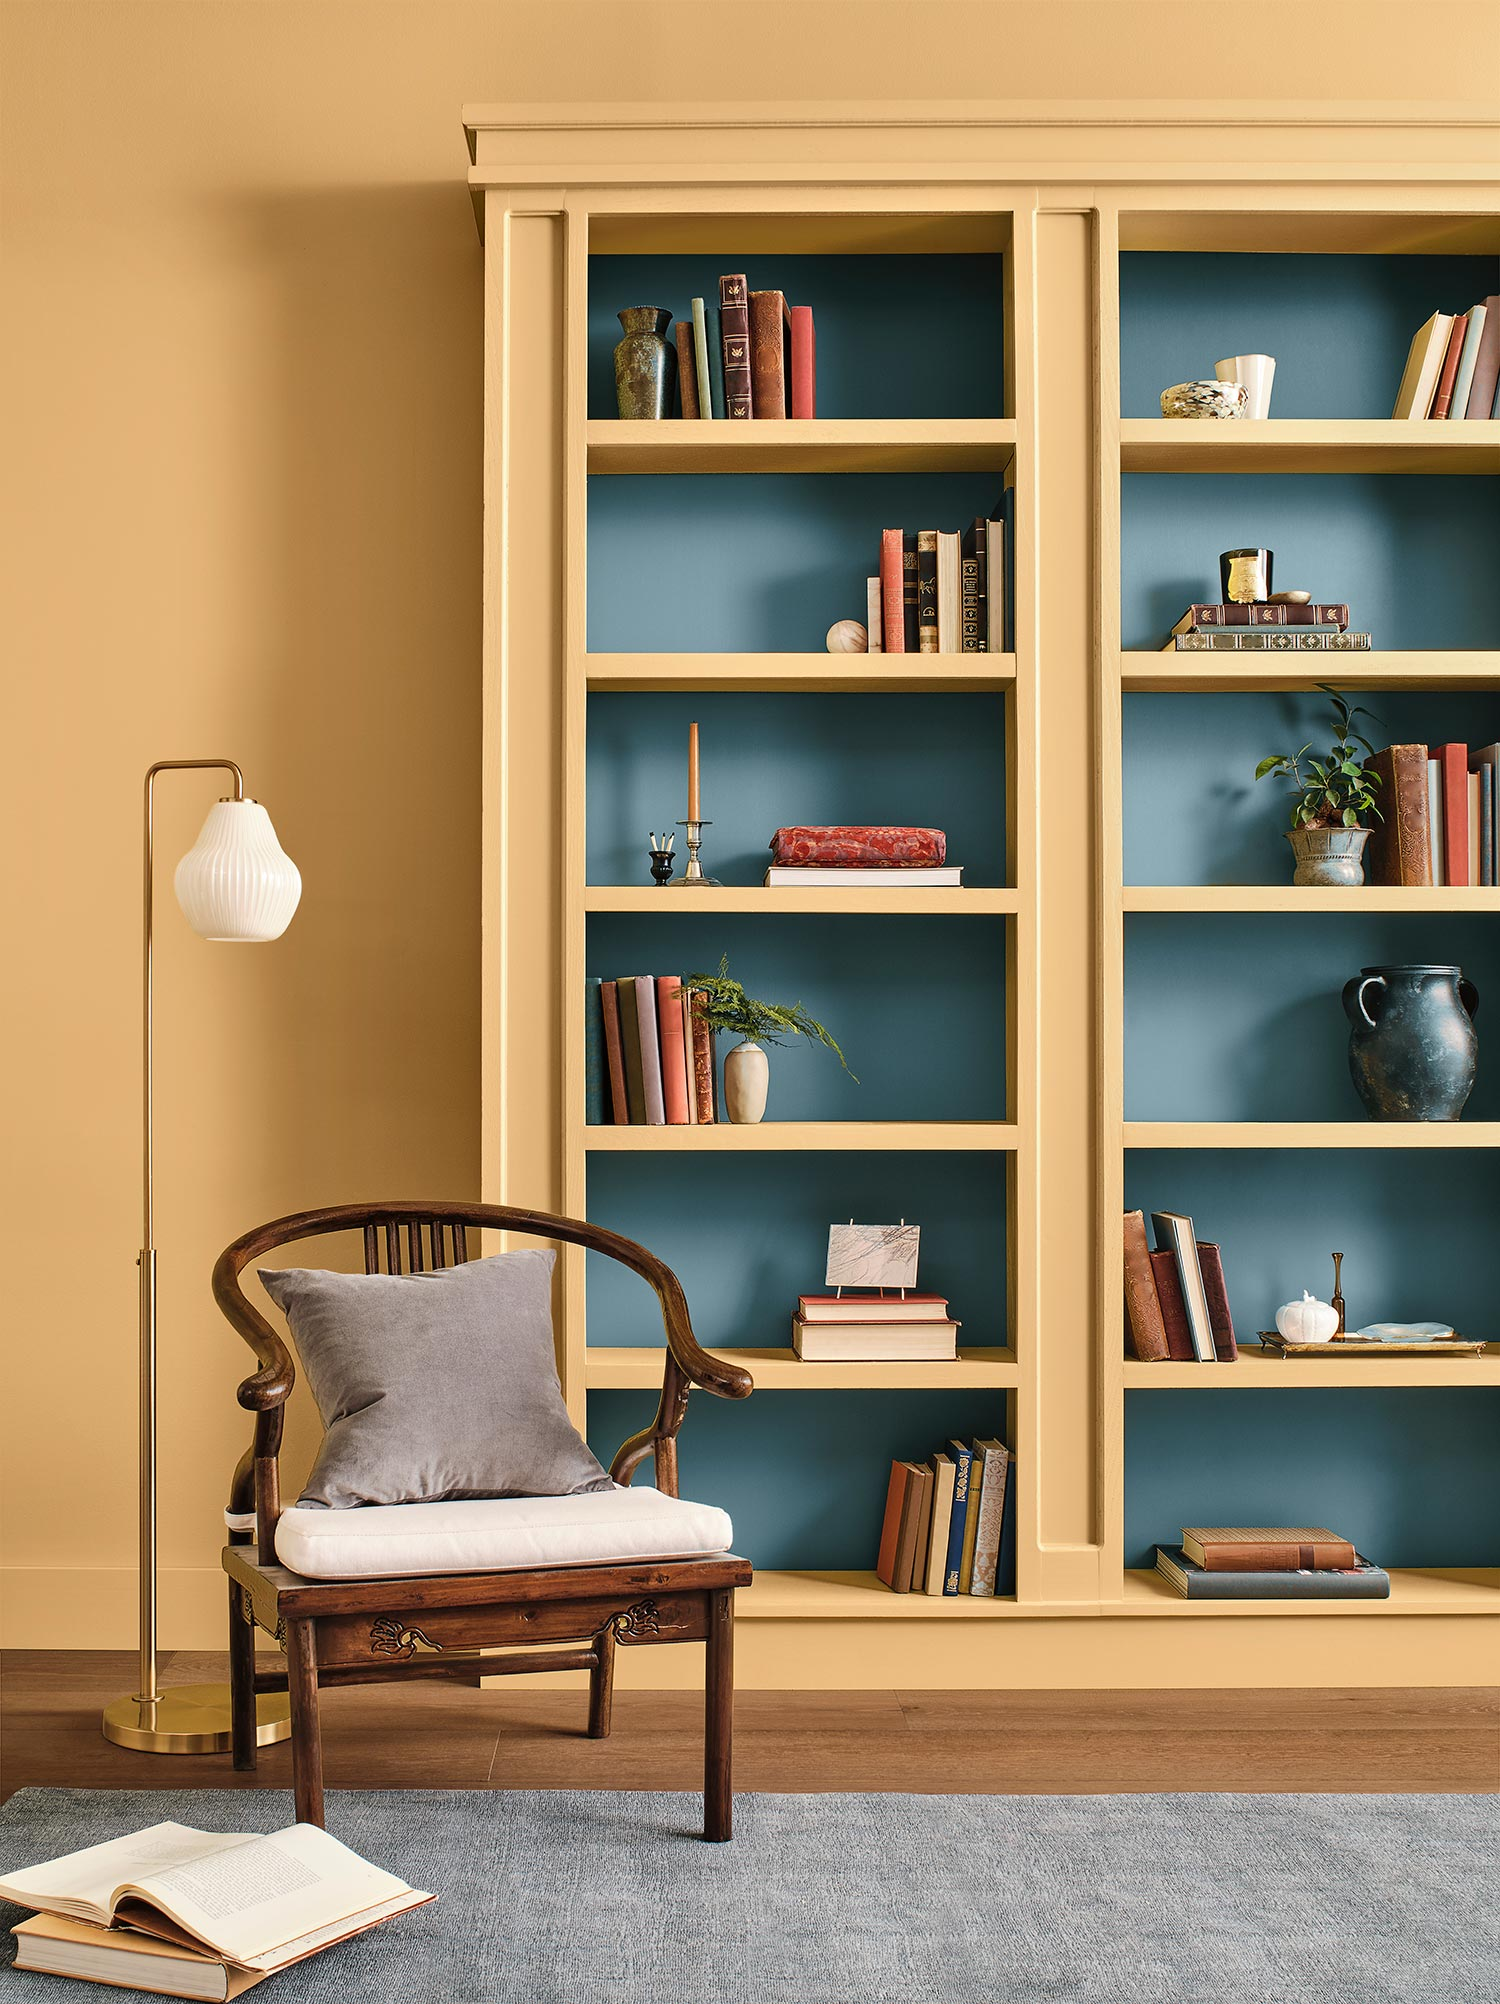 Reading area near a bookshelf painted in yellow and blue: Tarnished Trumpet SW 9026 and Blustery Sky SW 9140.